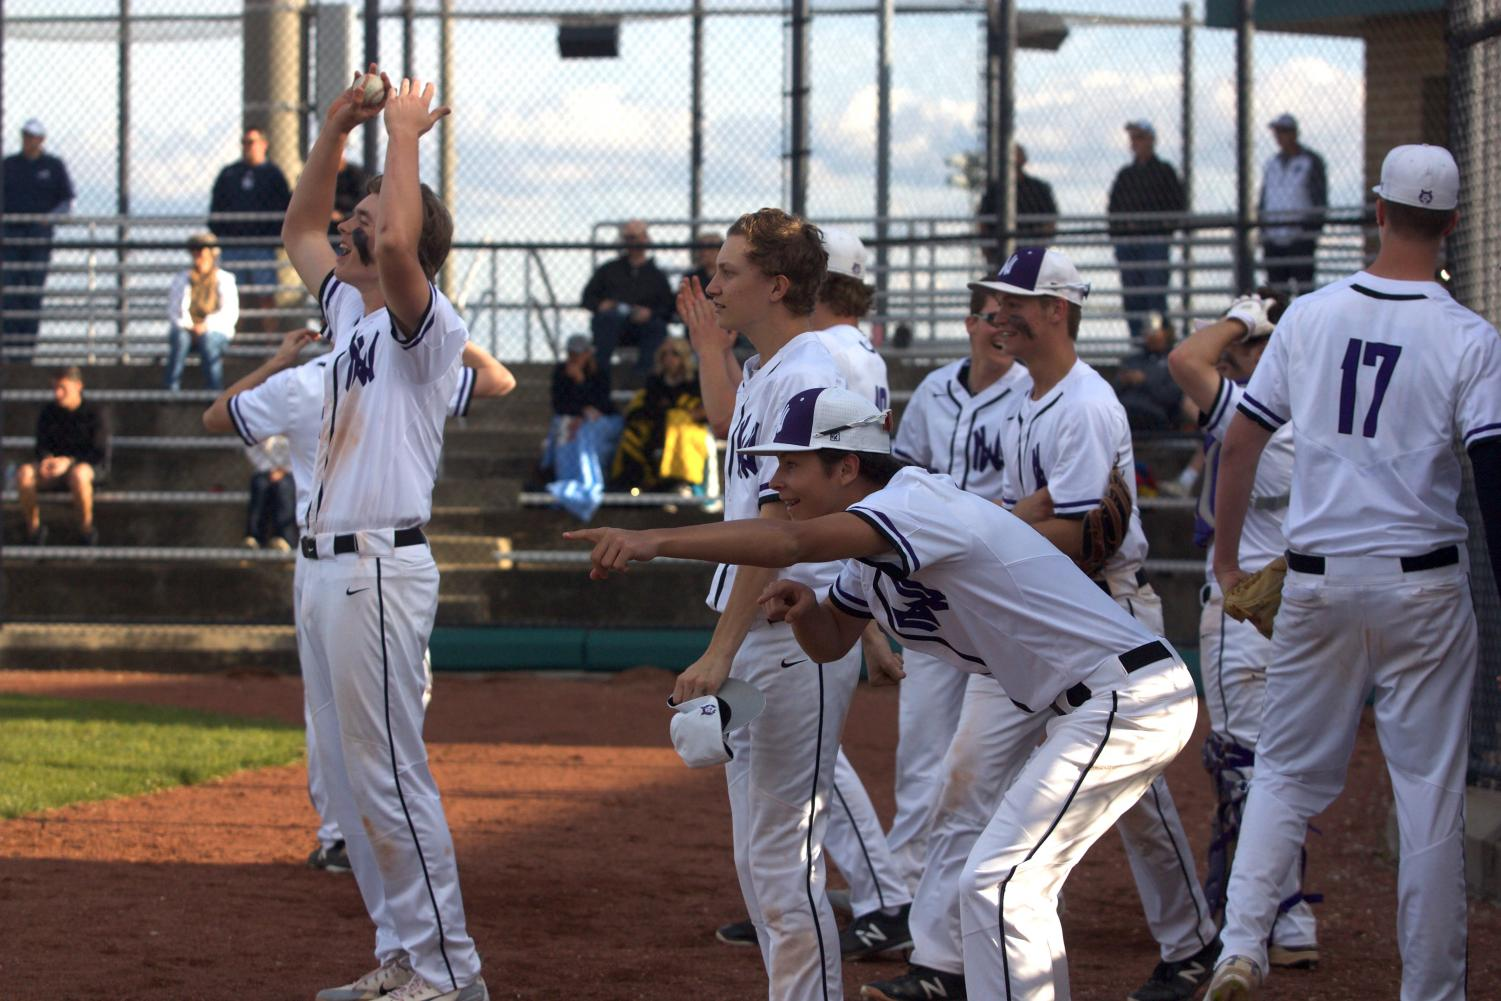 Members of the team celebrate after an RBI double by junior Sean Roseborough. The Huskies defeated the Mustangs, 12-3.